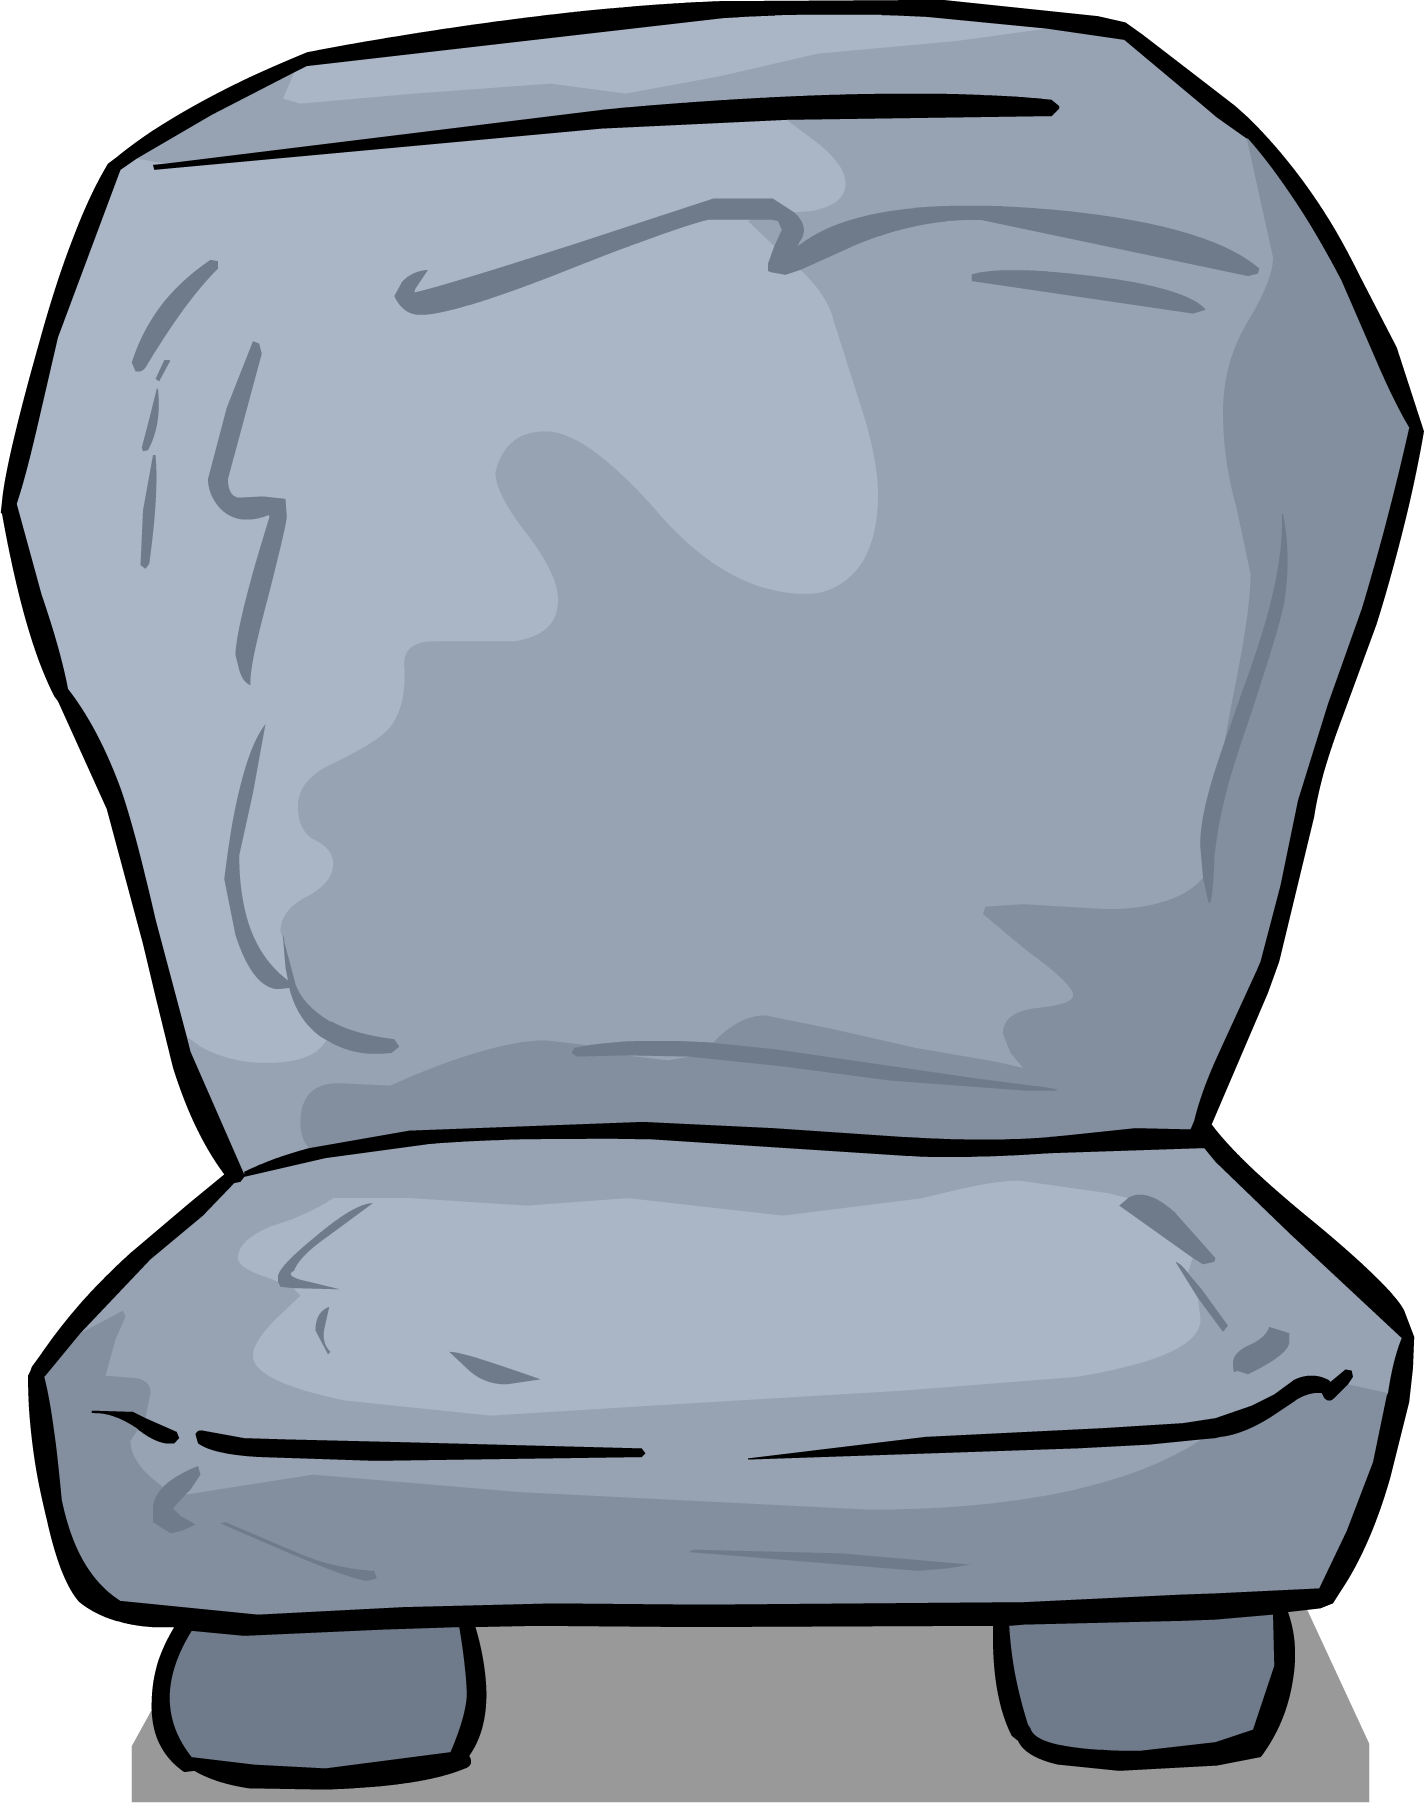 Image stone sprite png. Clipart chair seat